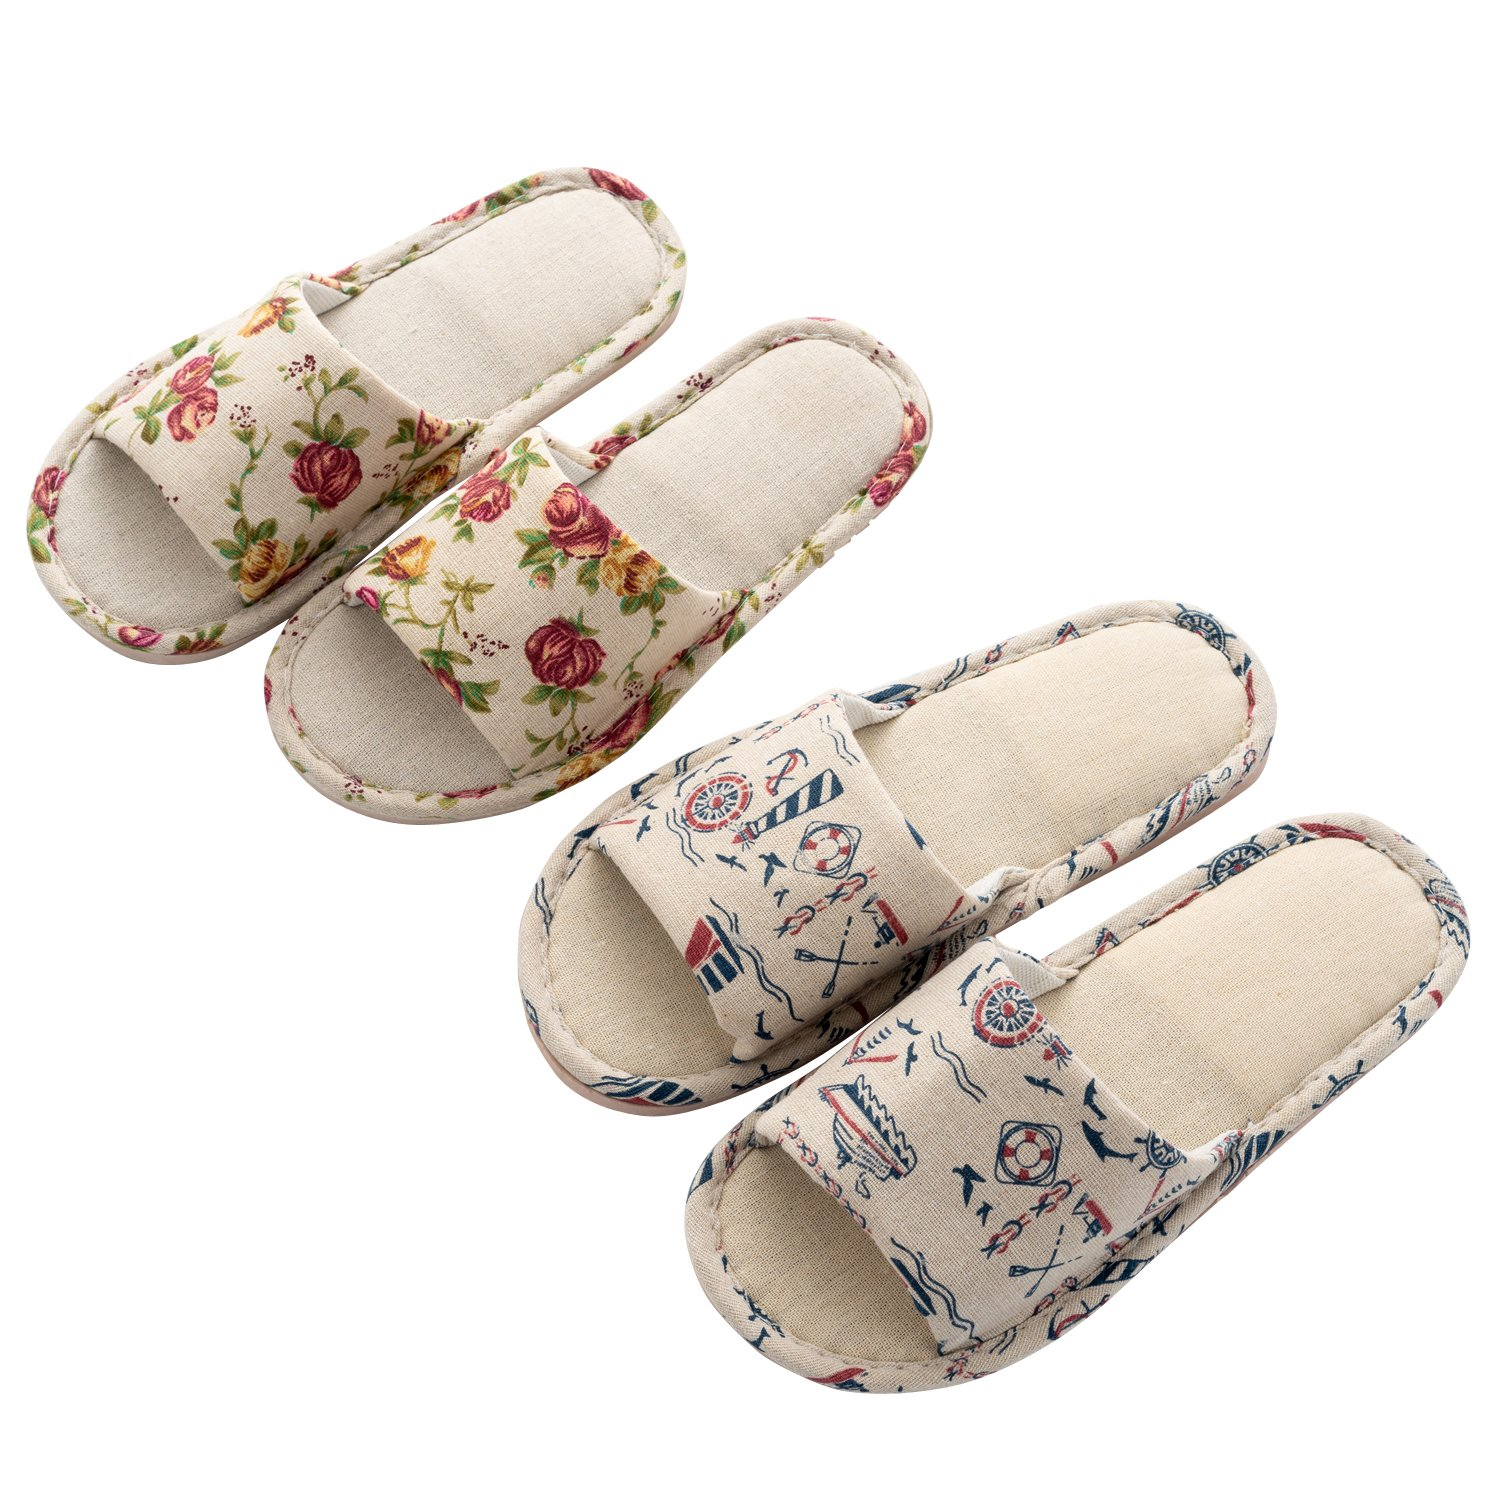 handrong 2 Pairs Home Slippers Mens Womens Indoor Open Toe Slip On Slipper Casual Soft Cotton Flax for Bedroom (Flower & Pattern)